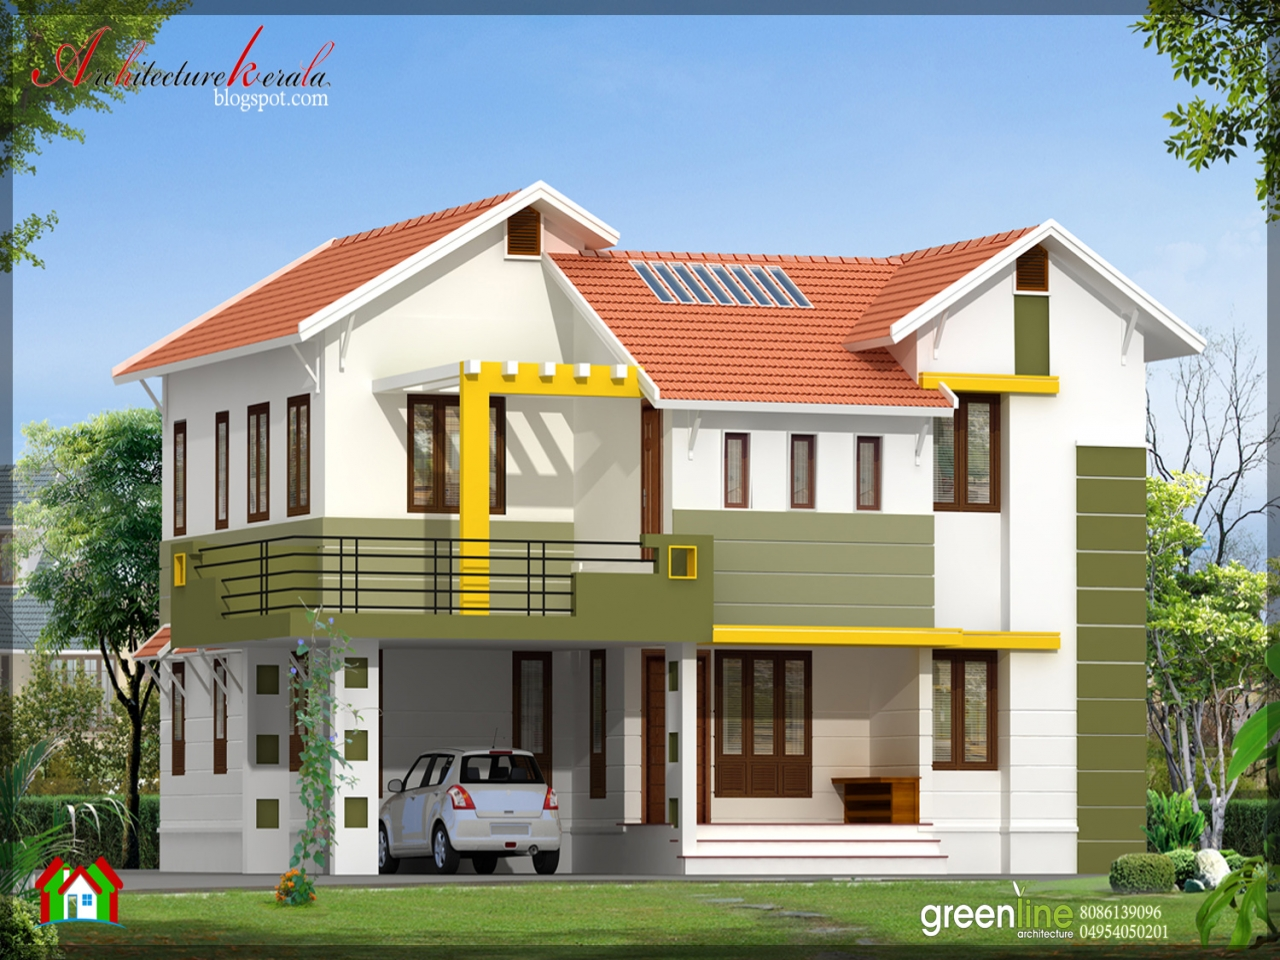 Simple modern house designs simple house design in india Simple modern house plans